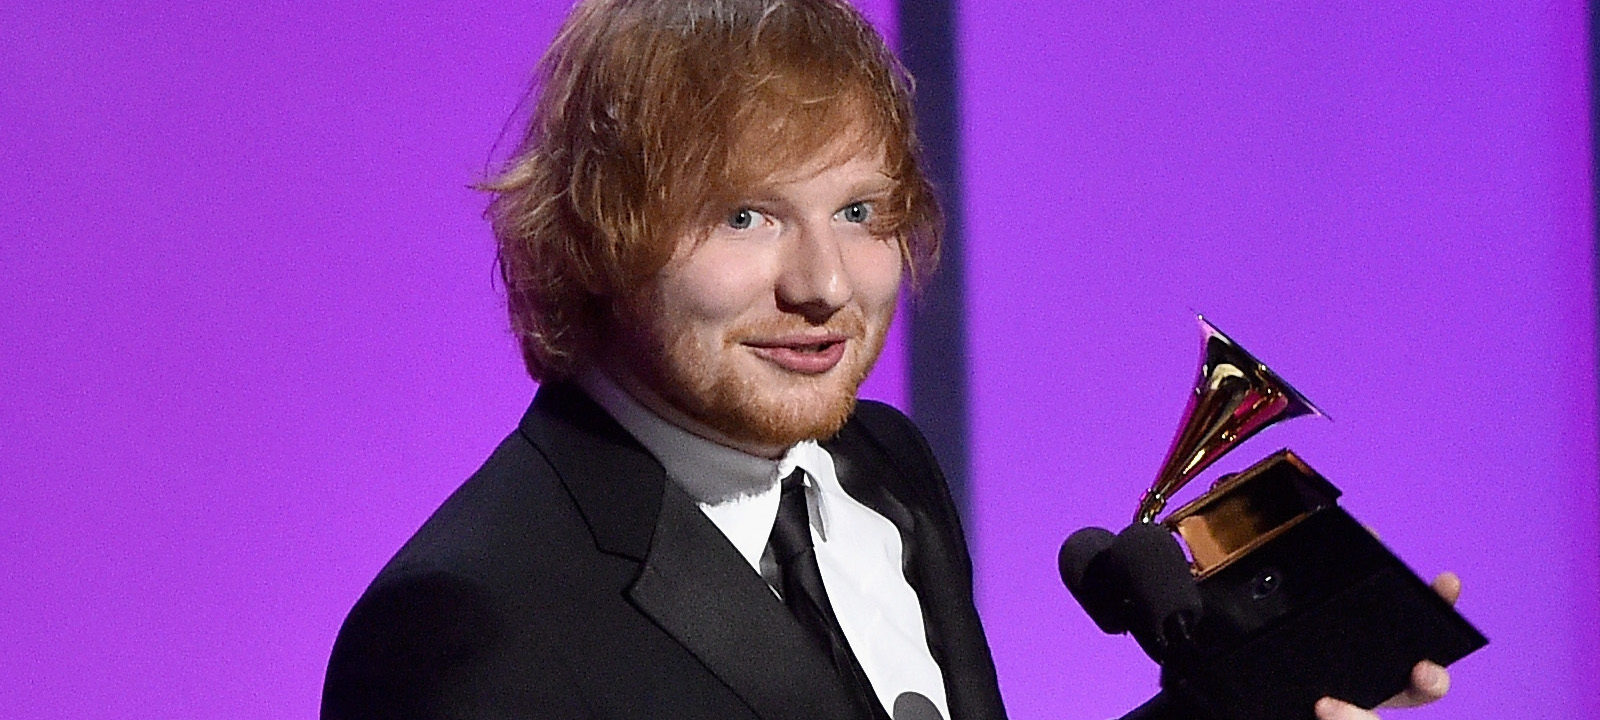 """Singer-songwriter Ed Sheeran accepts the Grammy Award for Best Pop Solo Performance, for """"Thinking Out Loud,"""" onstage during the GRAMMY Pre-Telecast at The 58th GRAMMY Awards at Microsoft Theater on February 15, 2016 in Los Angeles, California."""